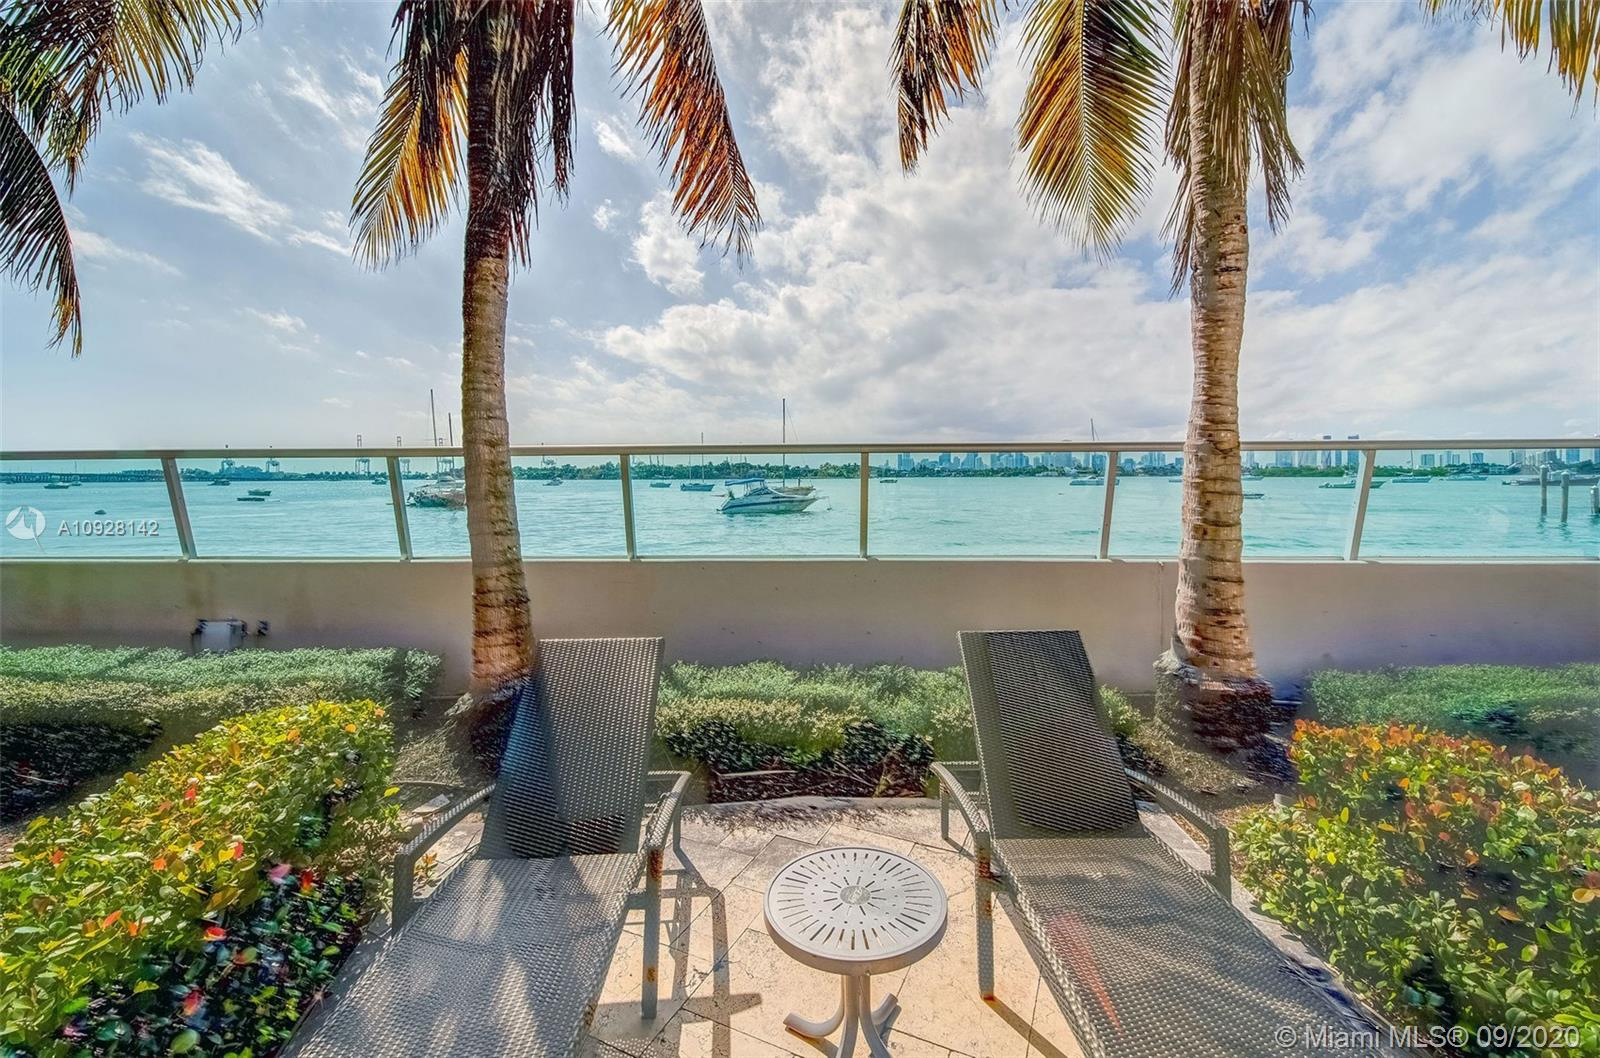 Flamingo South Beach #S-662 - 1500 Bay Rd #S-662, Miami Beach, FL 33139